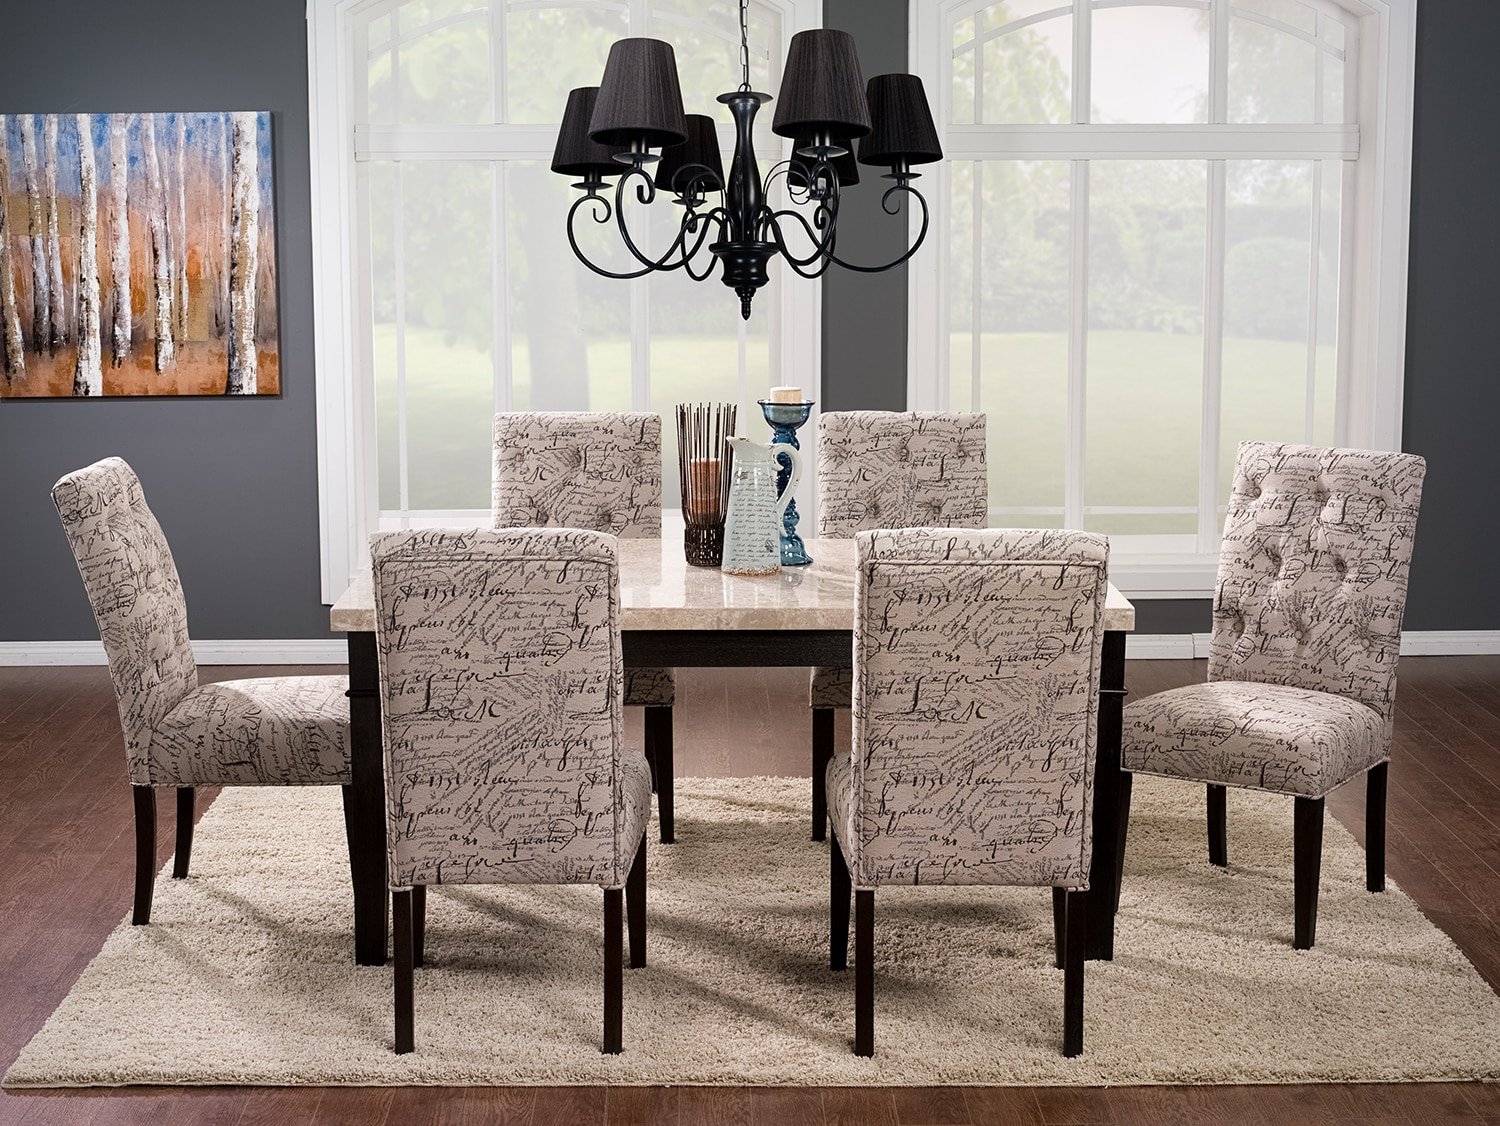 Aldo 7-Piece Dining Package with Brisbane Script Chairs